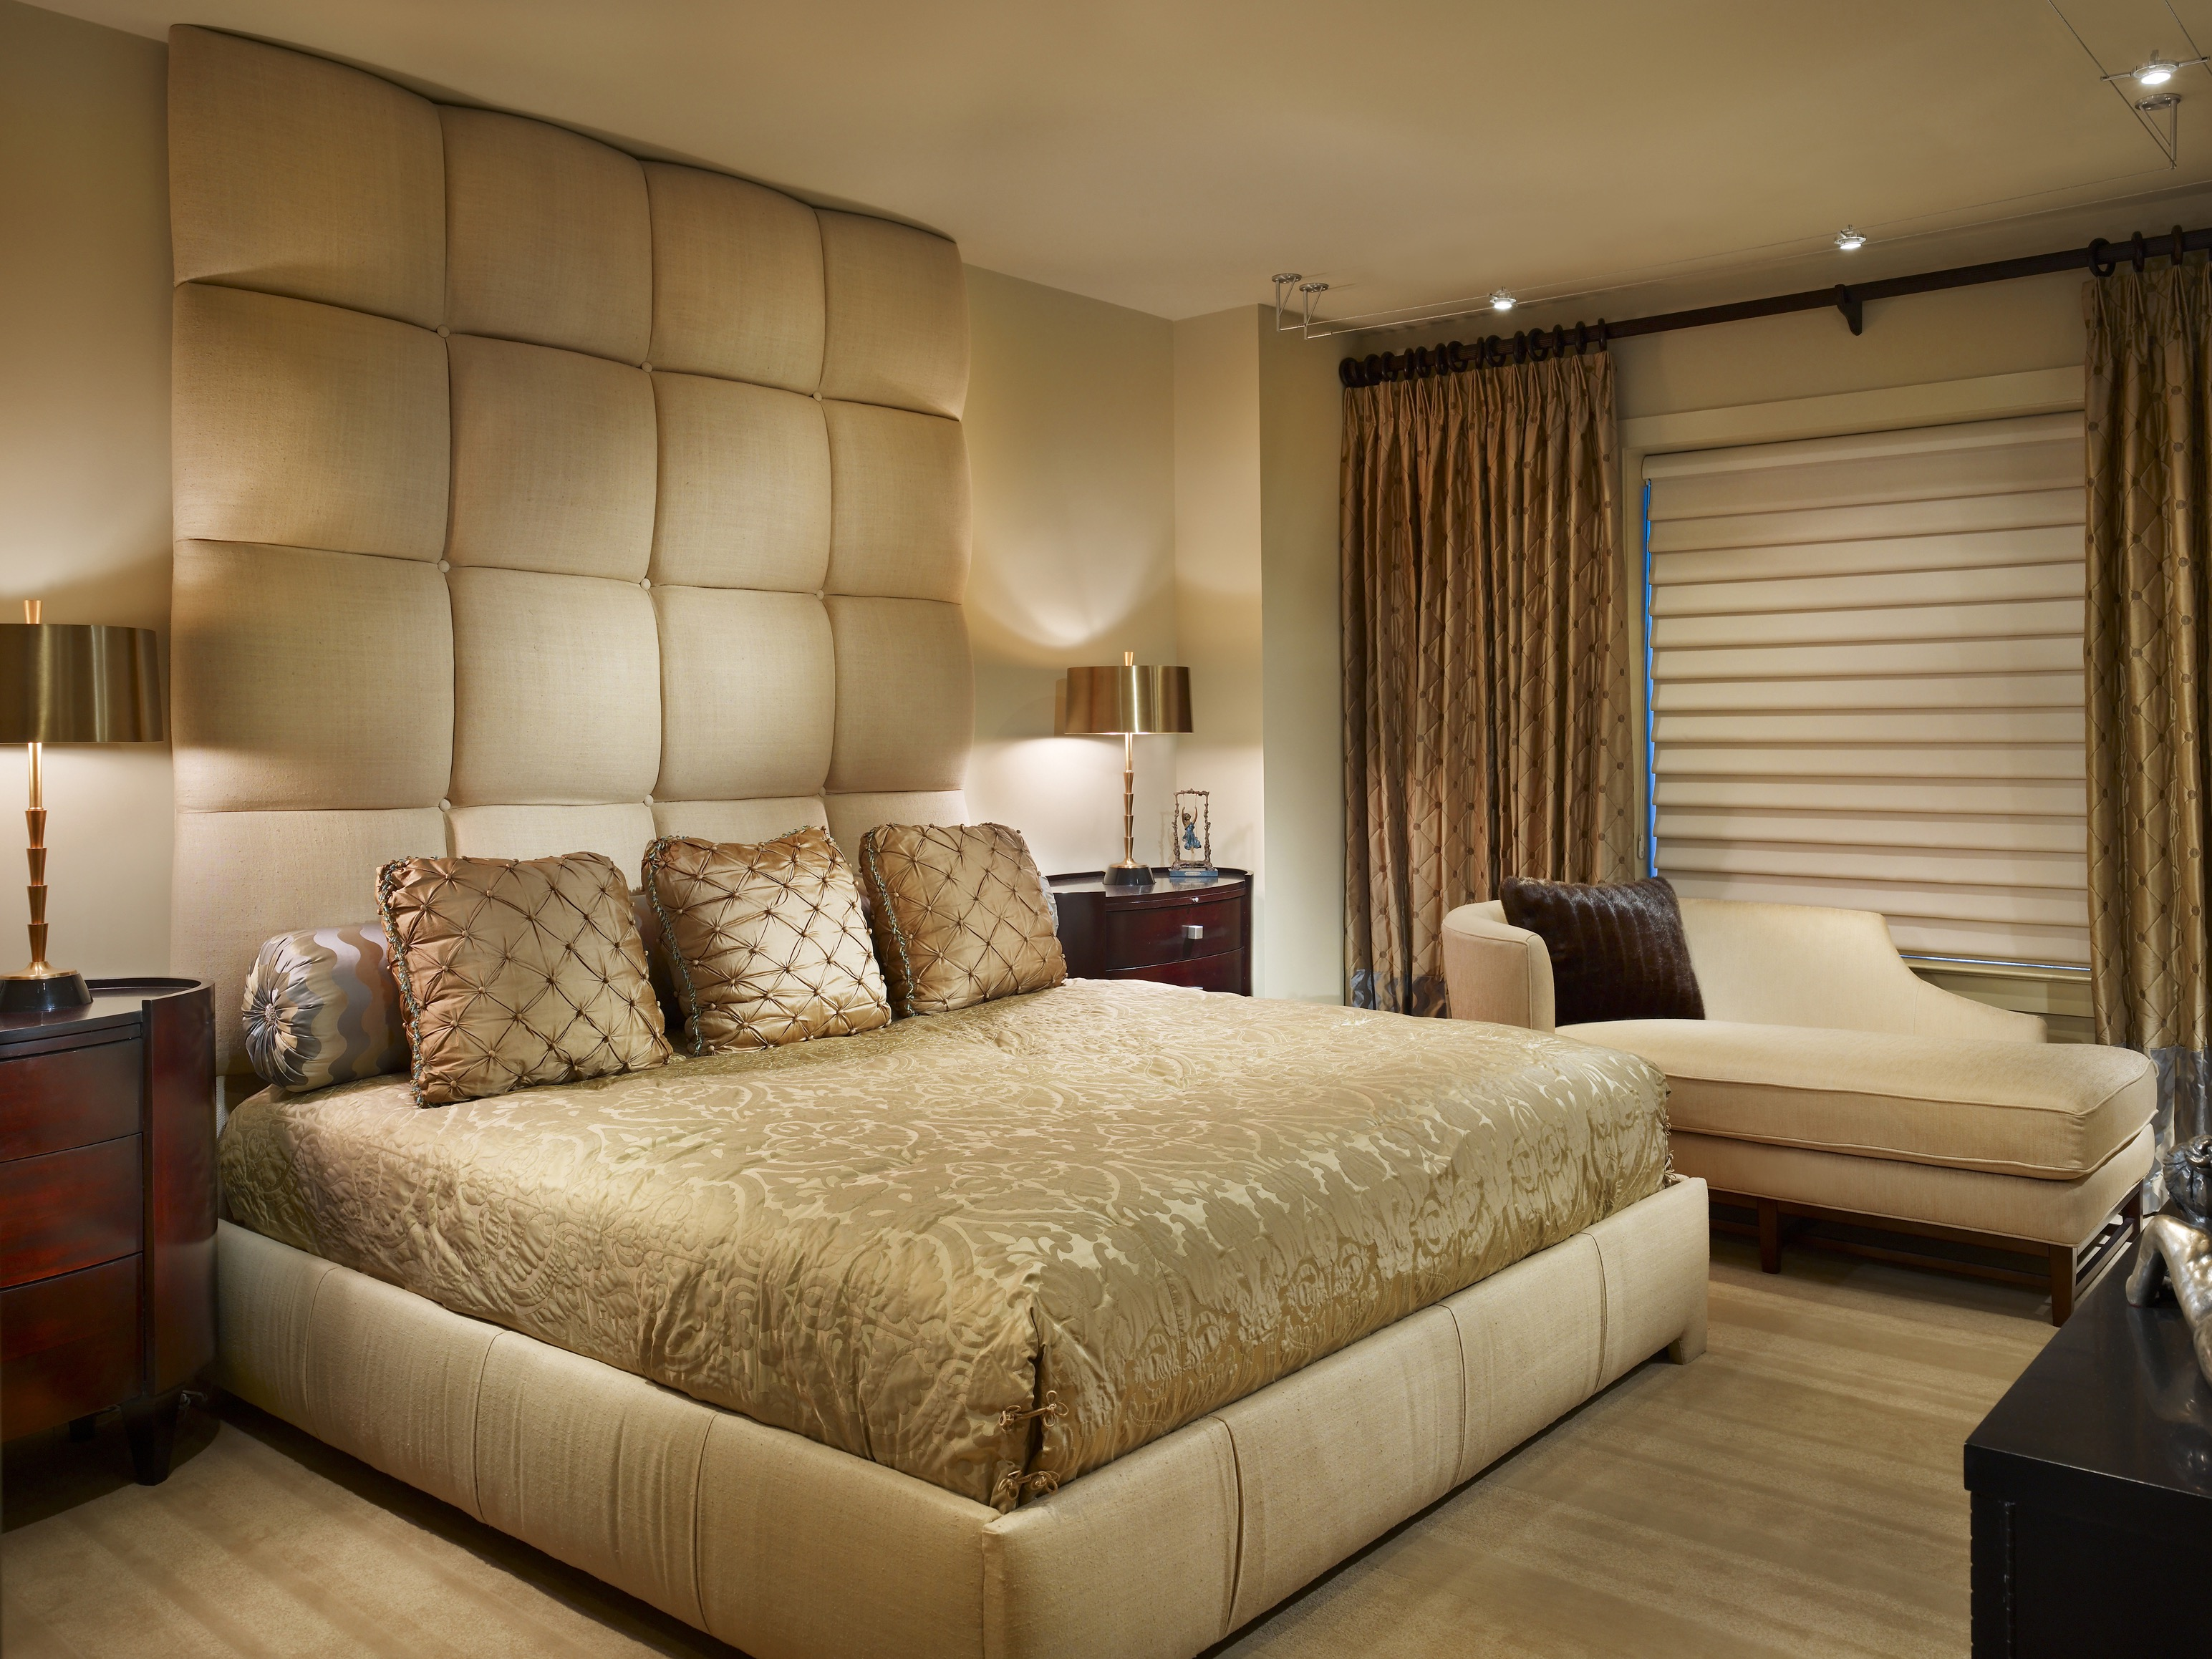 Sophisticated Glamour Bedroom In Gold Paint Color (View 22 of 22)